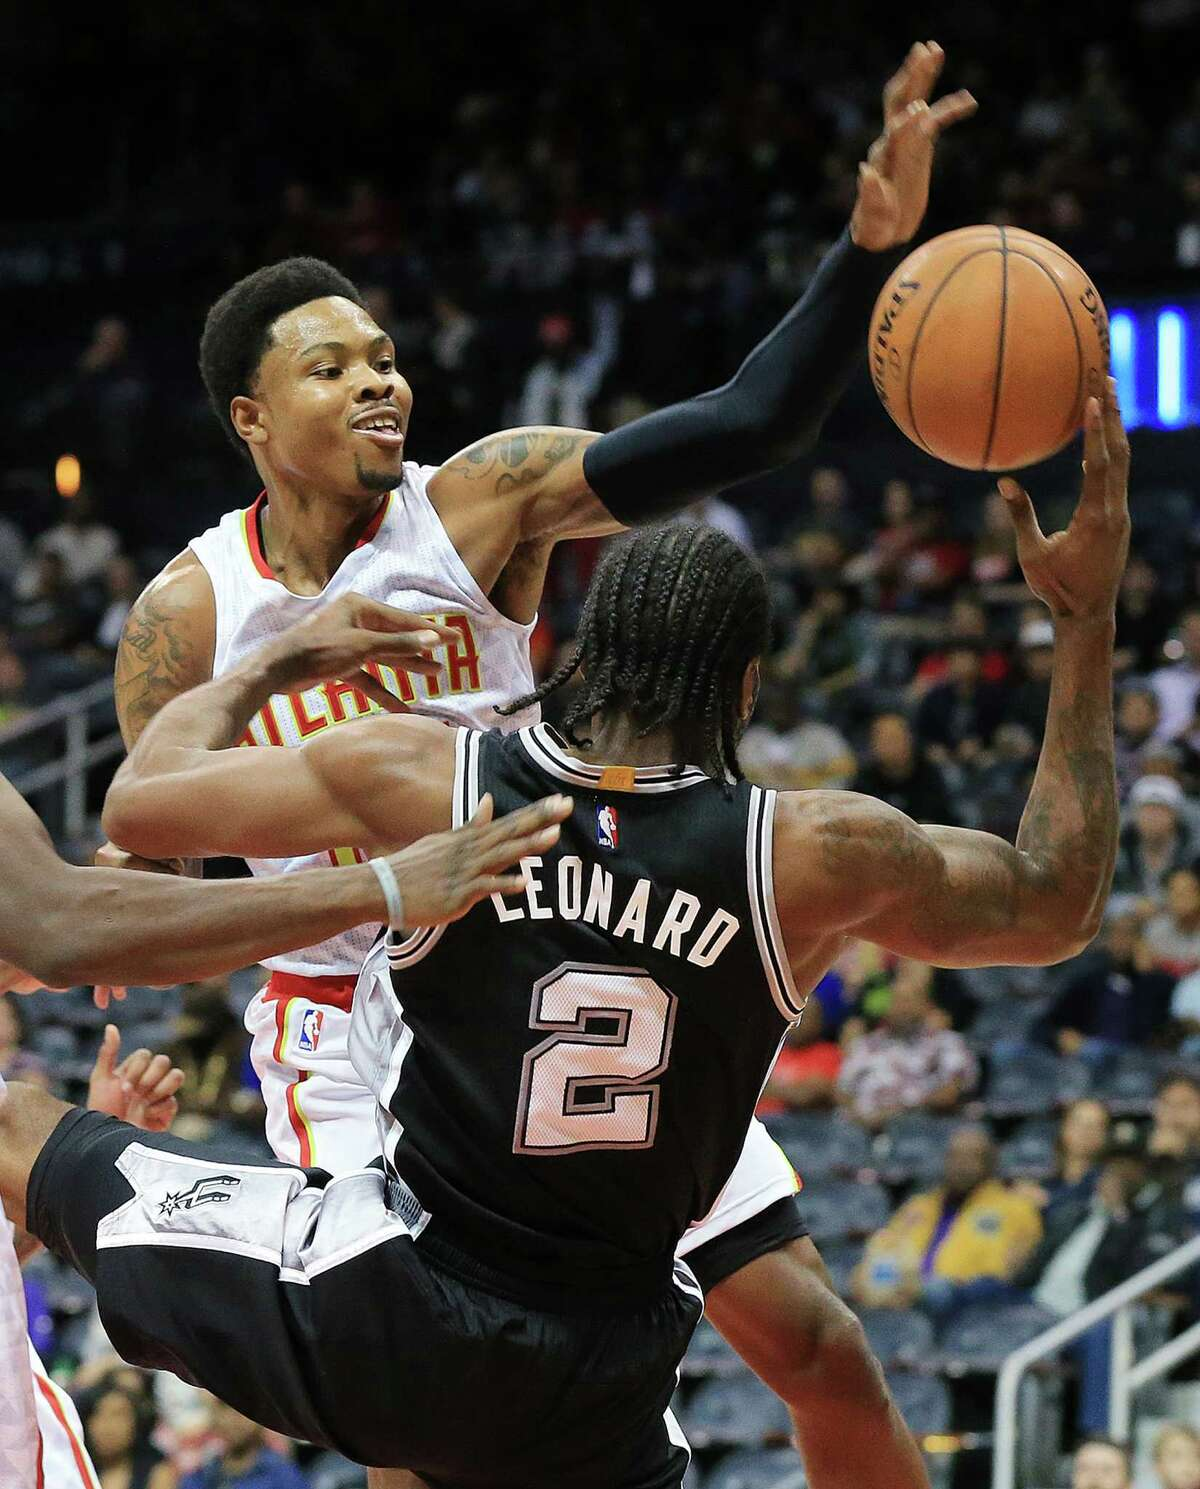 The Atlanta Hawks' Kent Bazemore fouls the San Antonio Spurs' Kawhi Leonard (2) on his way to the basket during the first period in a preseason game on Wednesday, Oct. 14, 2015, at Philips Arena in Atlanta. (Curtis Compton/Atlanta Journal-Constitution/TNS)